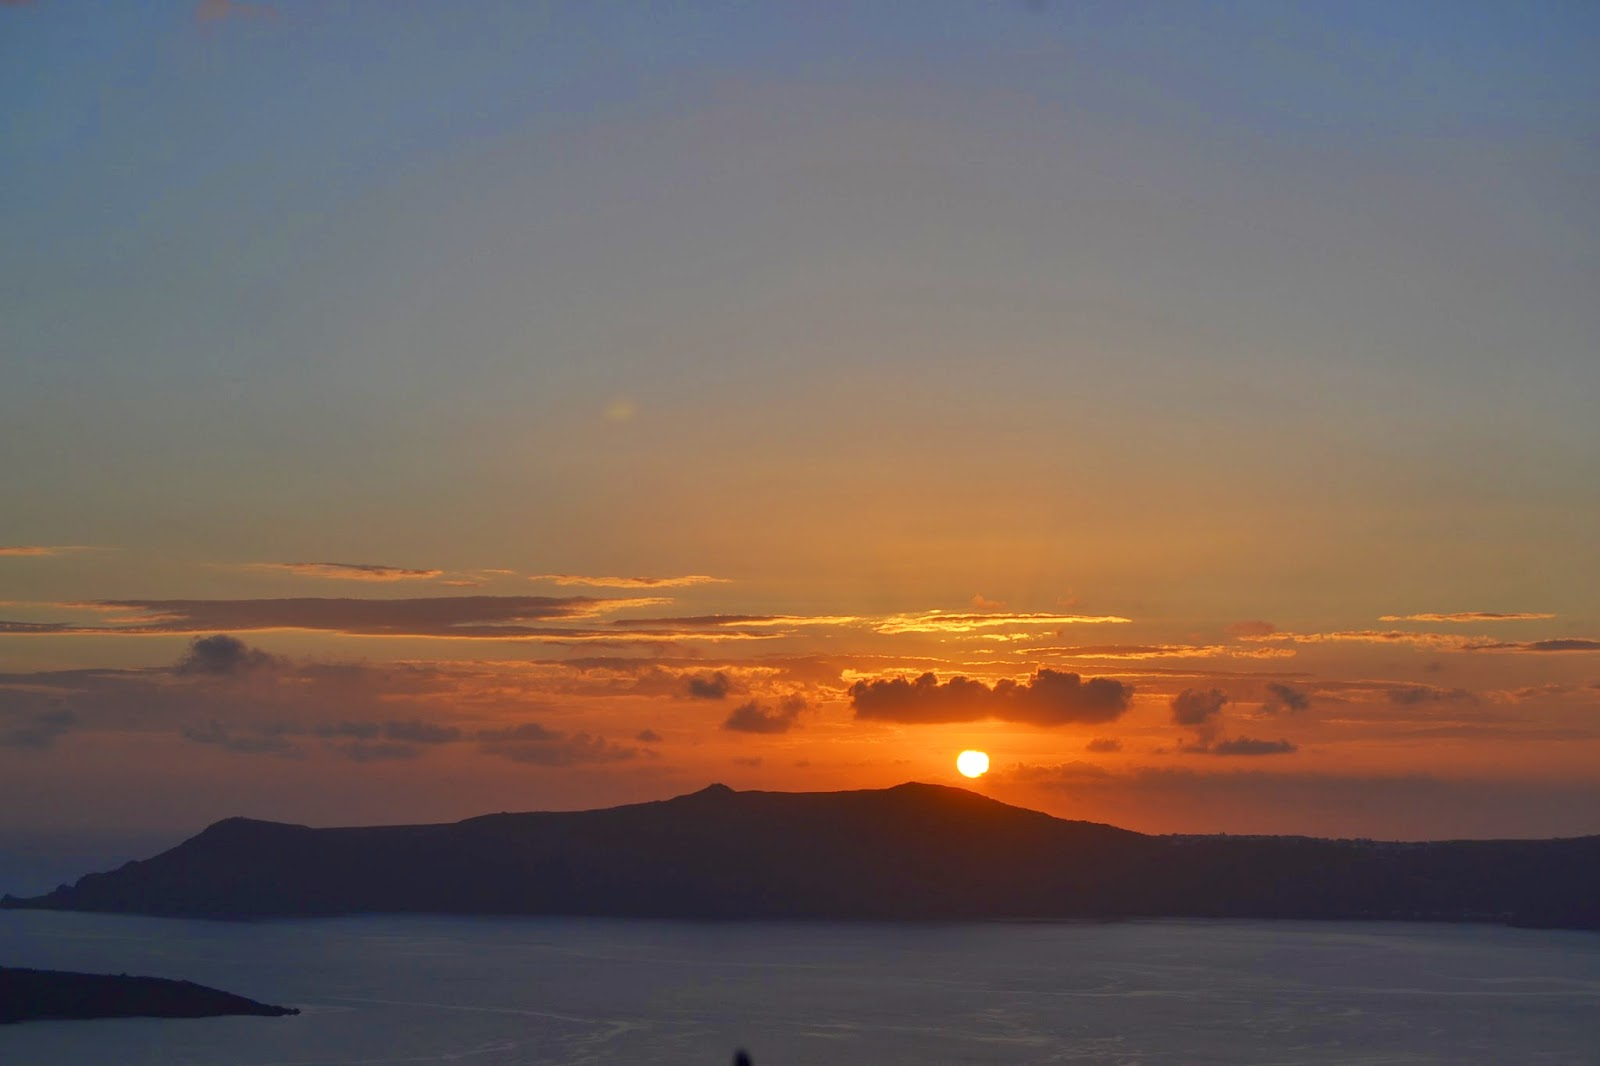 http://www.syriouslyinfashion.com/2014/11/magic-sunset-in-santorini.html